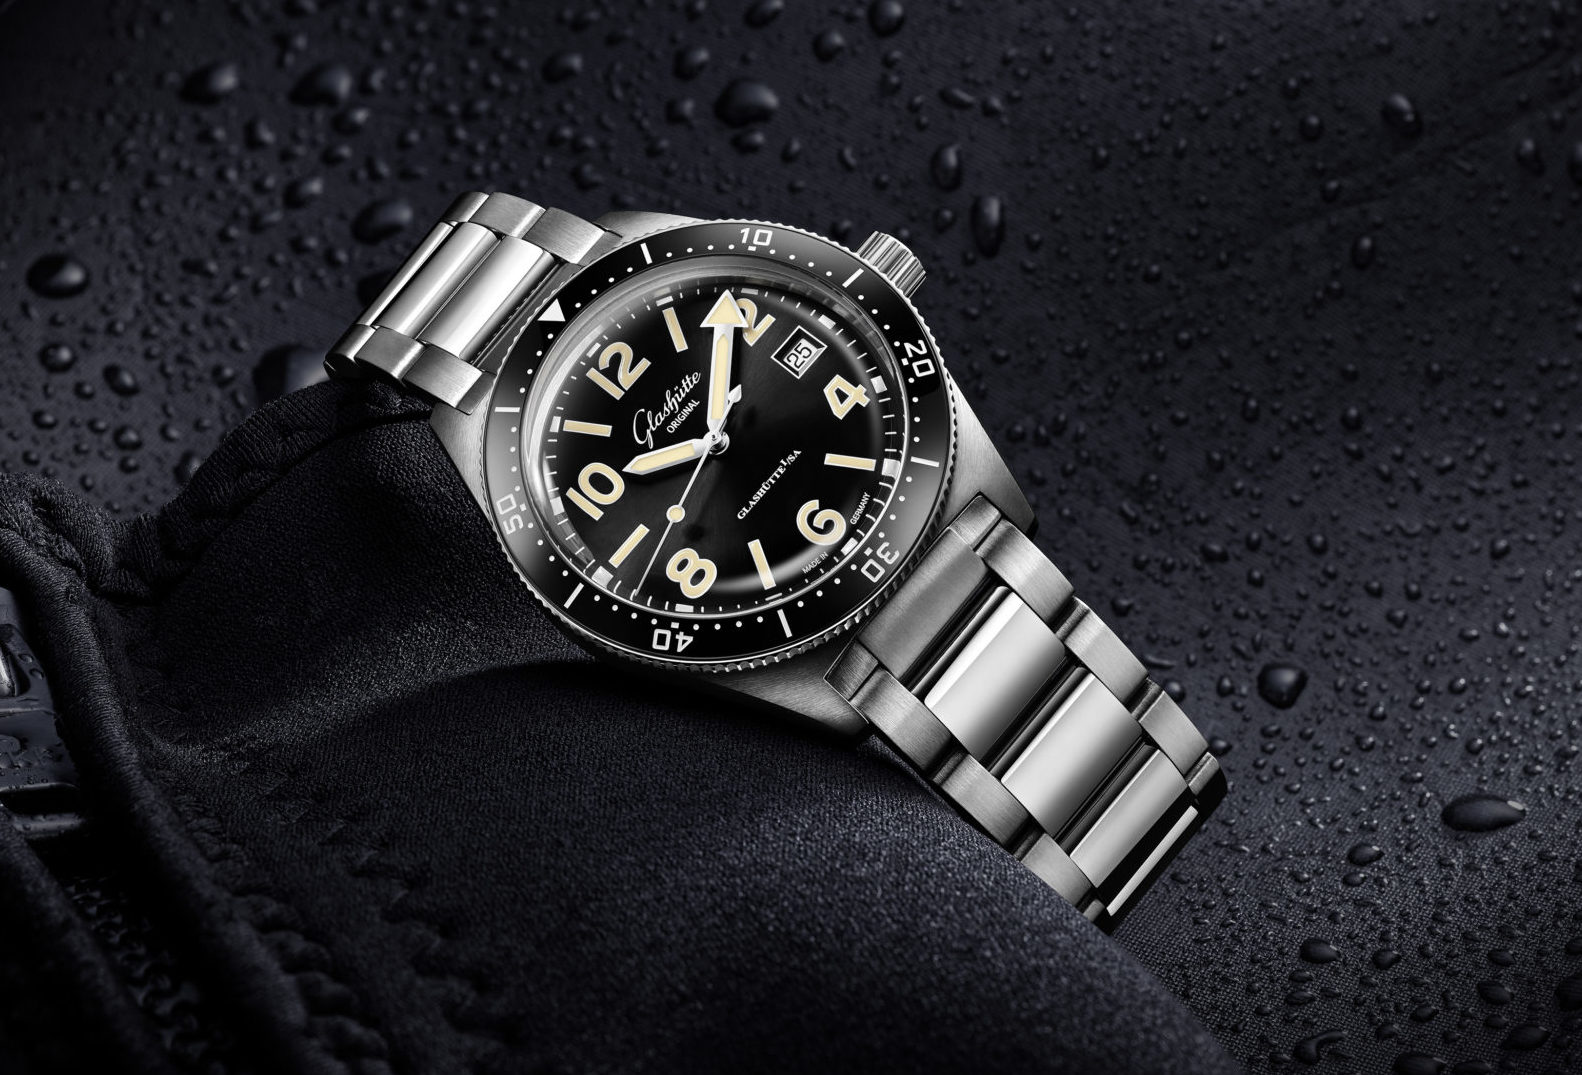 Glashütte Original introduces a fresh dive watch family 50 years after it first took the plunge